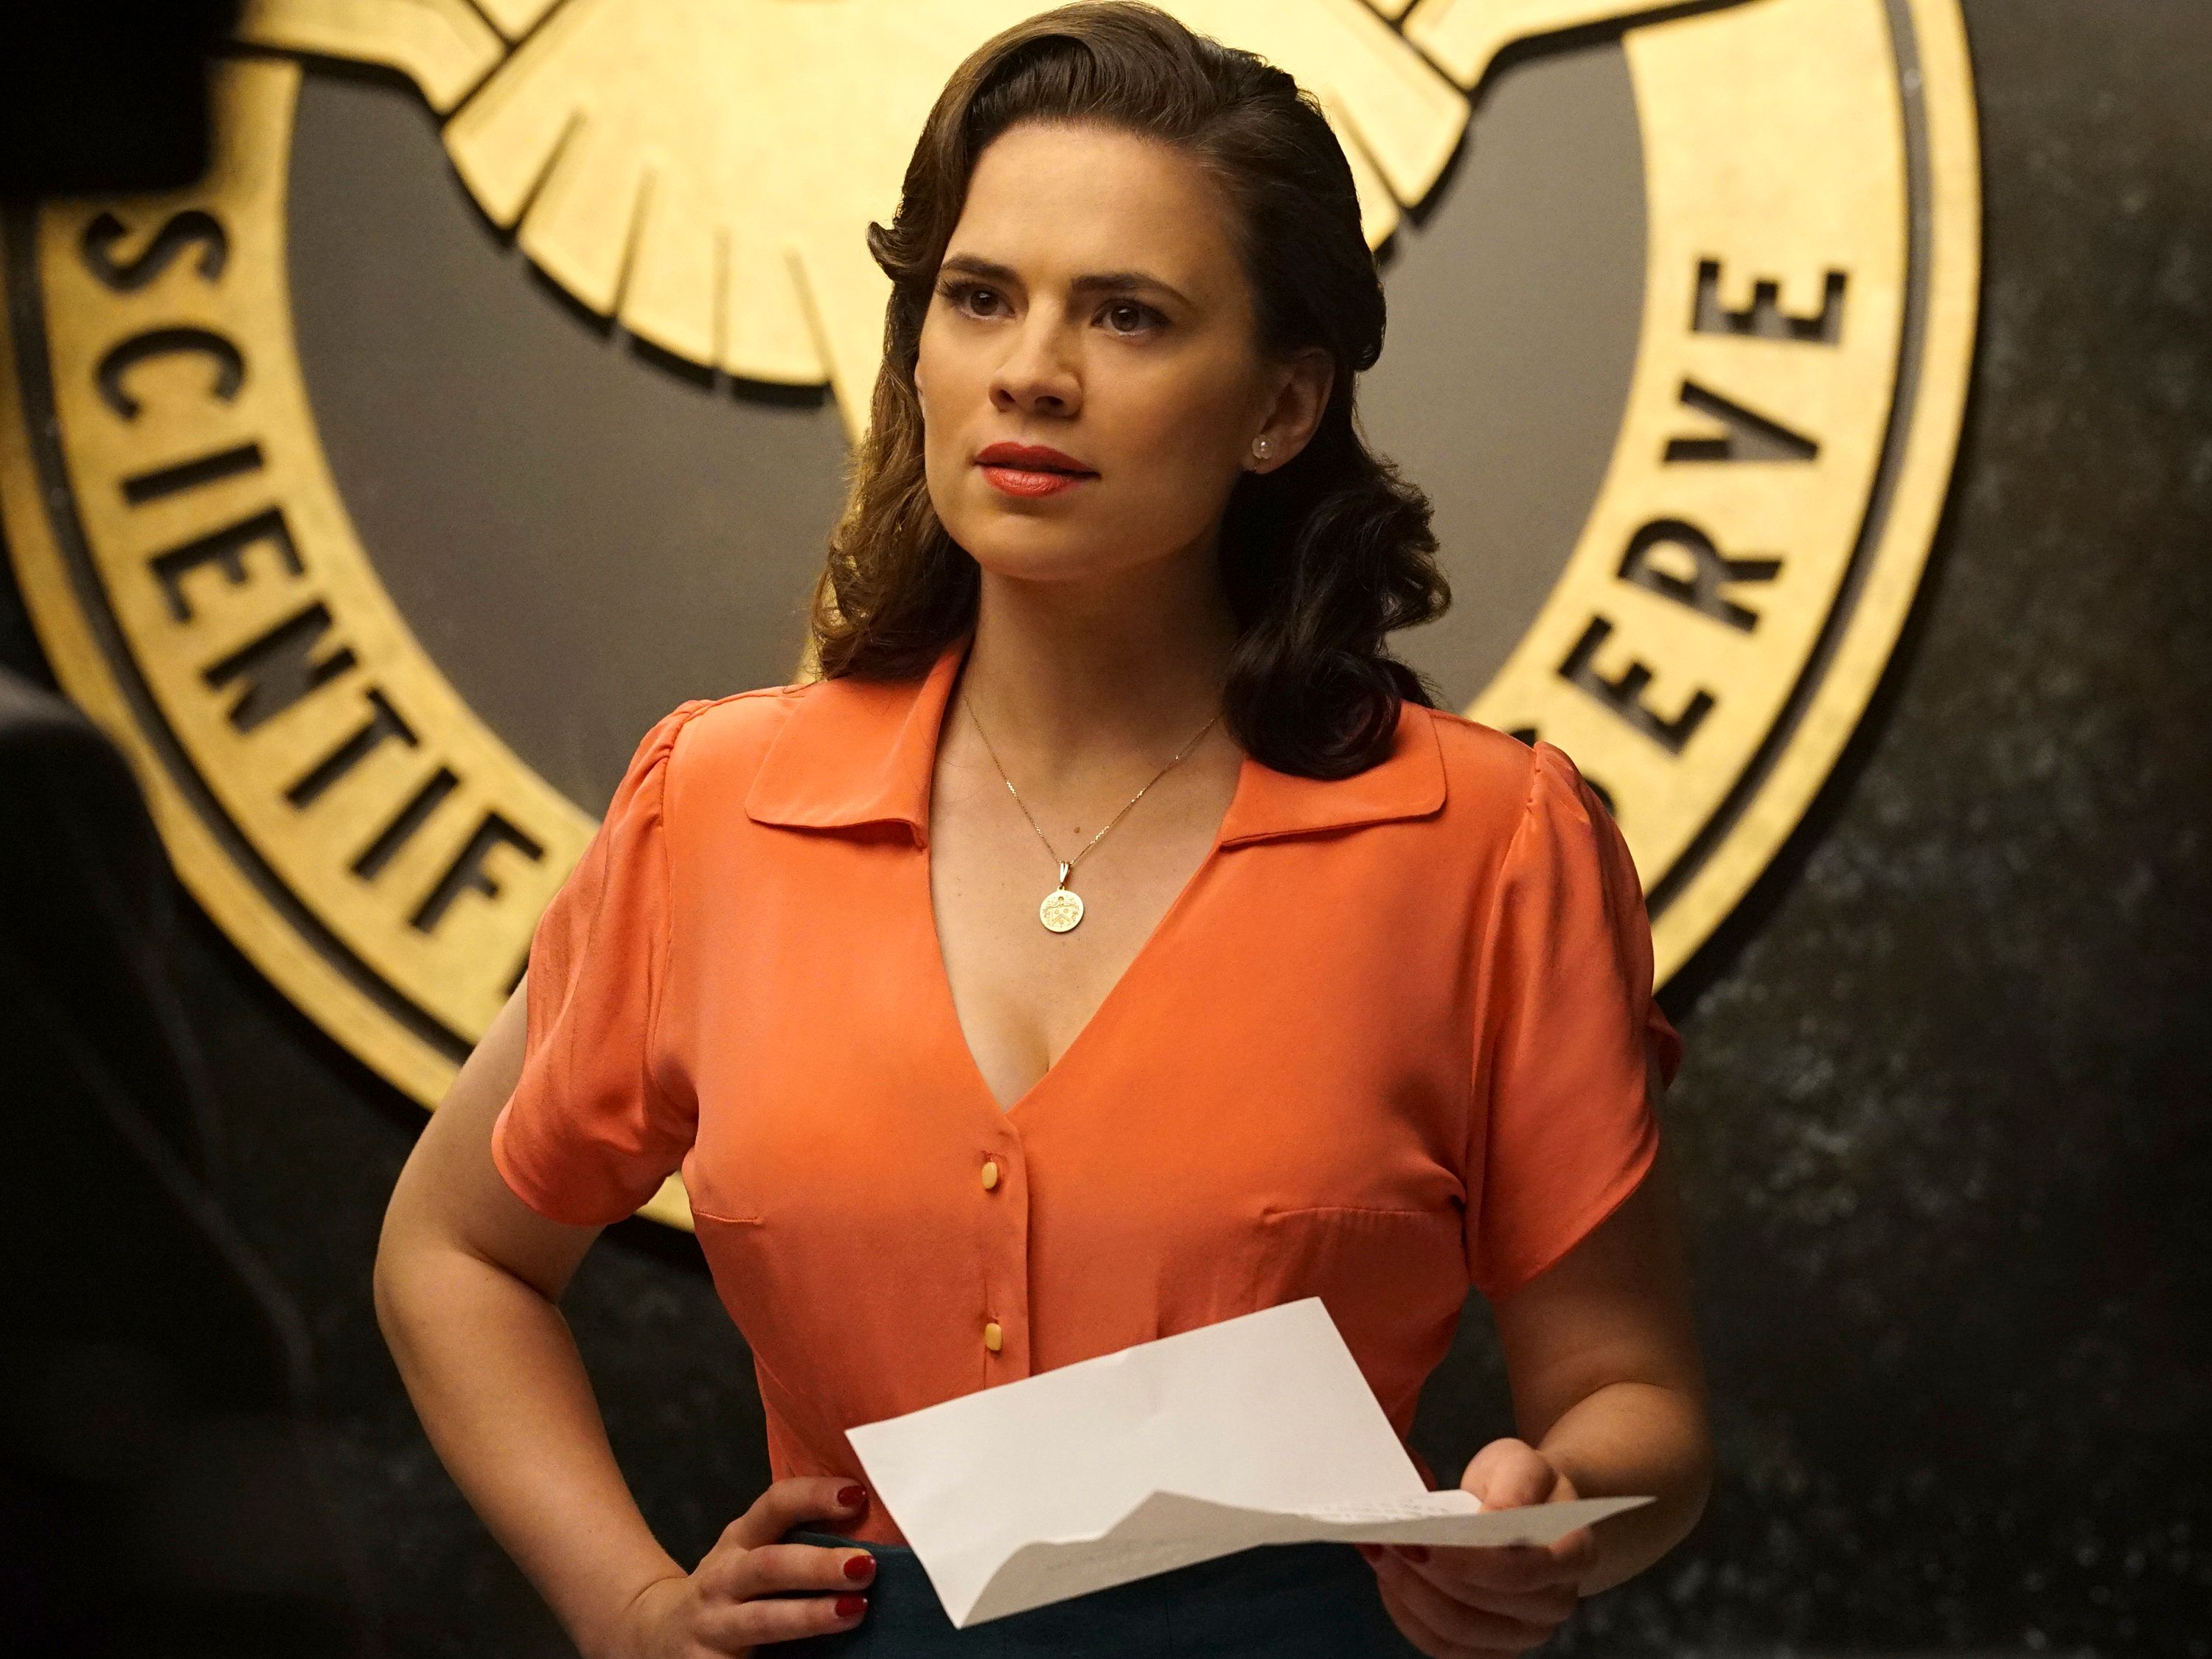 MARVEL'S AGENT CARTER - Smoke and Mirrors - Agent Carter and the SSR learn theres more than just a pretty face behind Hollywood star Whitney Frost, Peggys most dangerous foe yet, on Marvels Agent Carter, TUESDAY, FEBRUARY 2 (9:00-10:00 p.m. EST) on the ABC Television Network. (Photo by Richard Cartwright/ABC via Getty Images) HAYLEY ATWELL